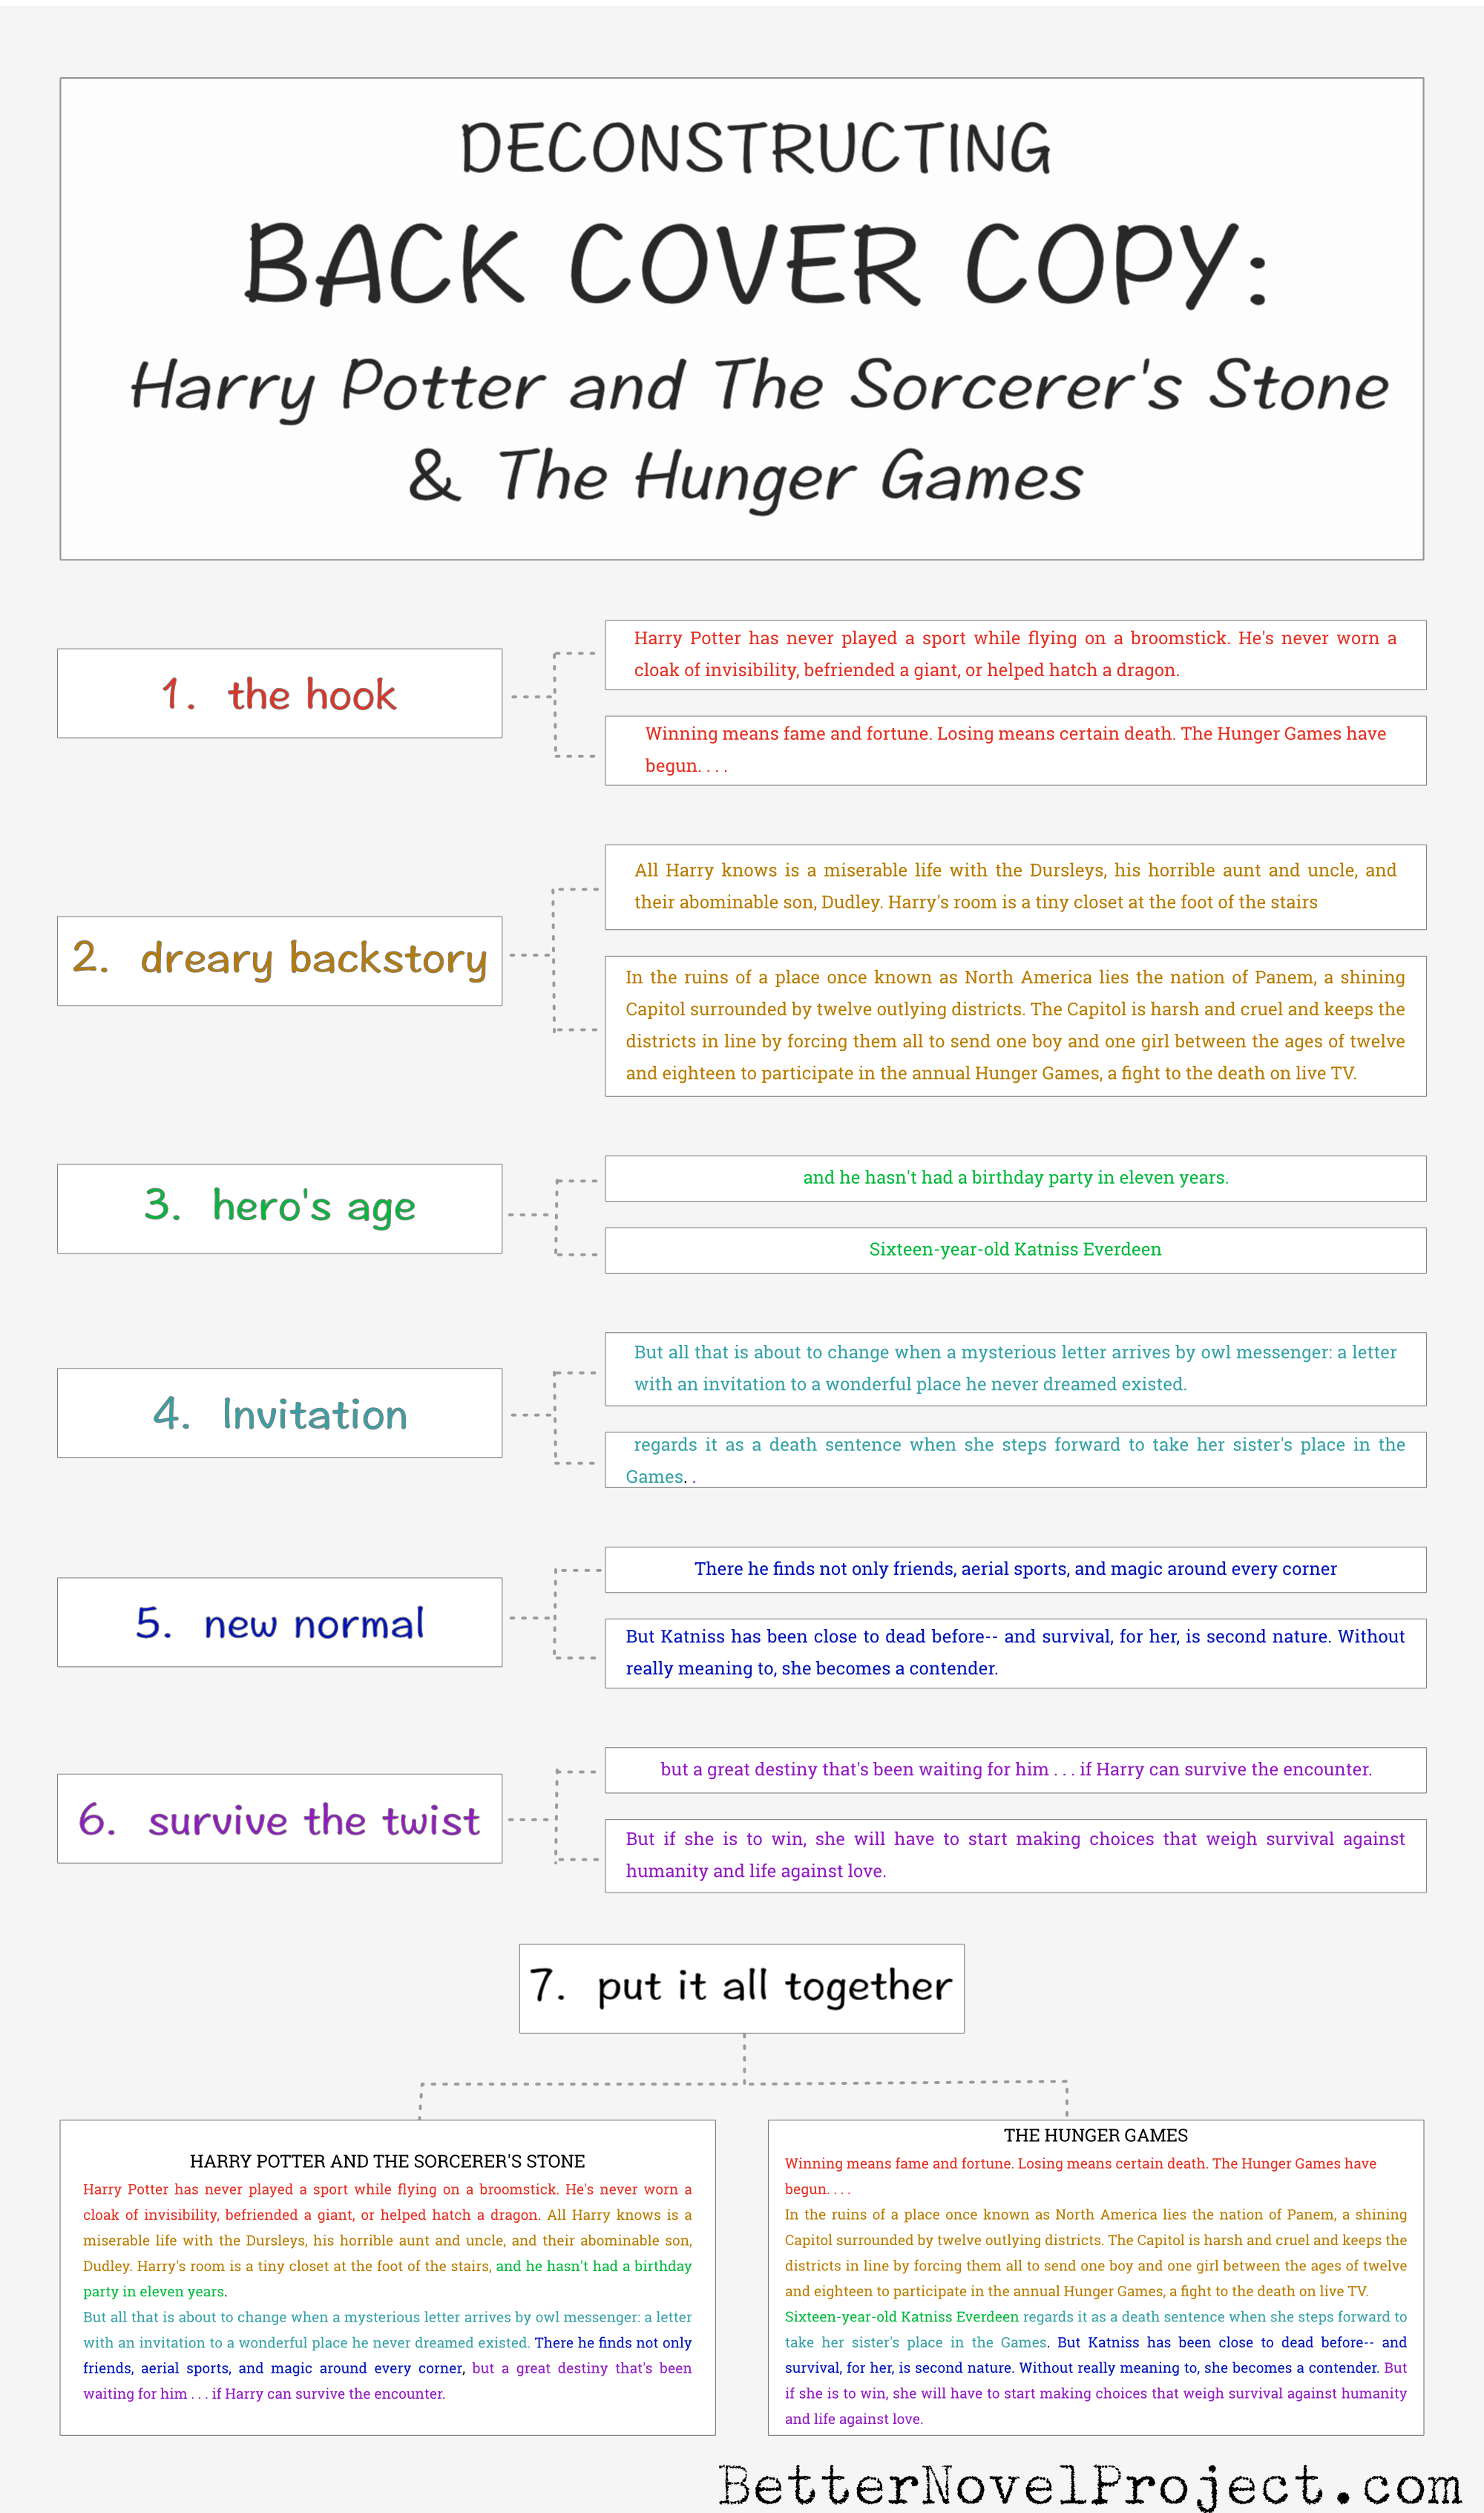 deconstructing back cover copy infographic spreadsheet writing